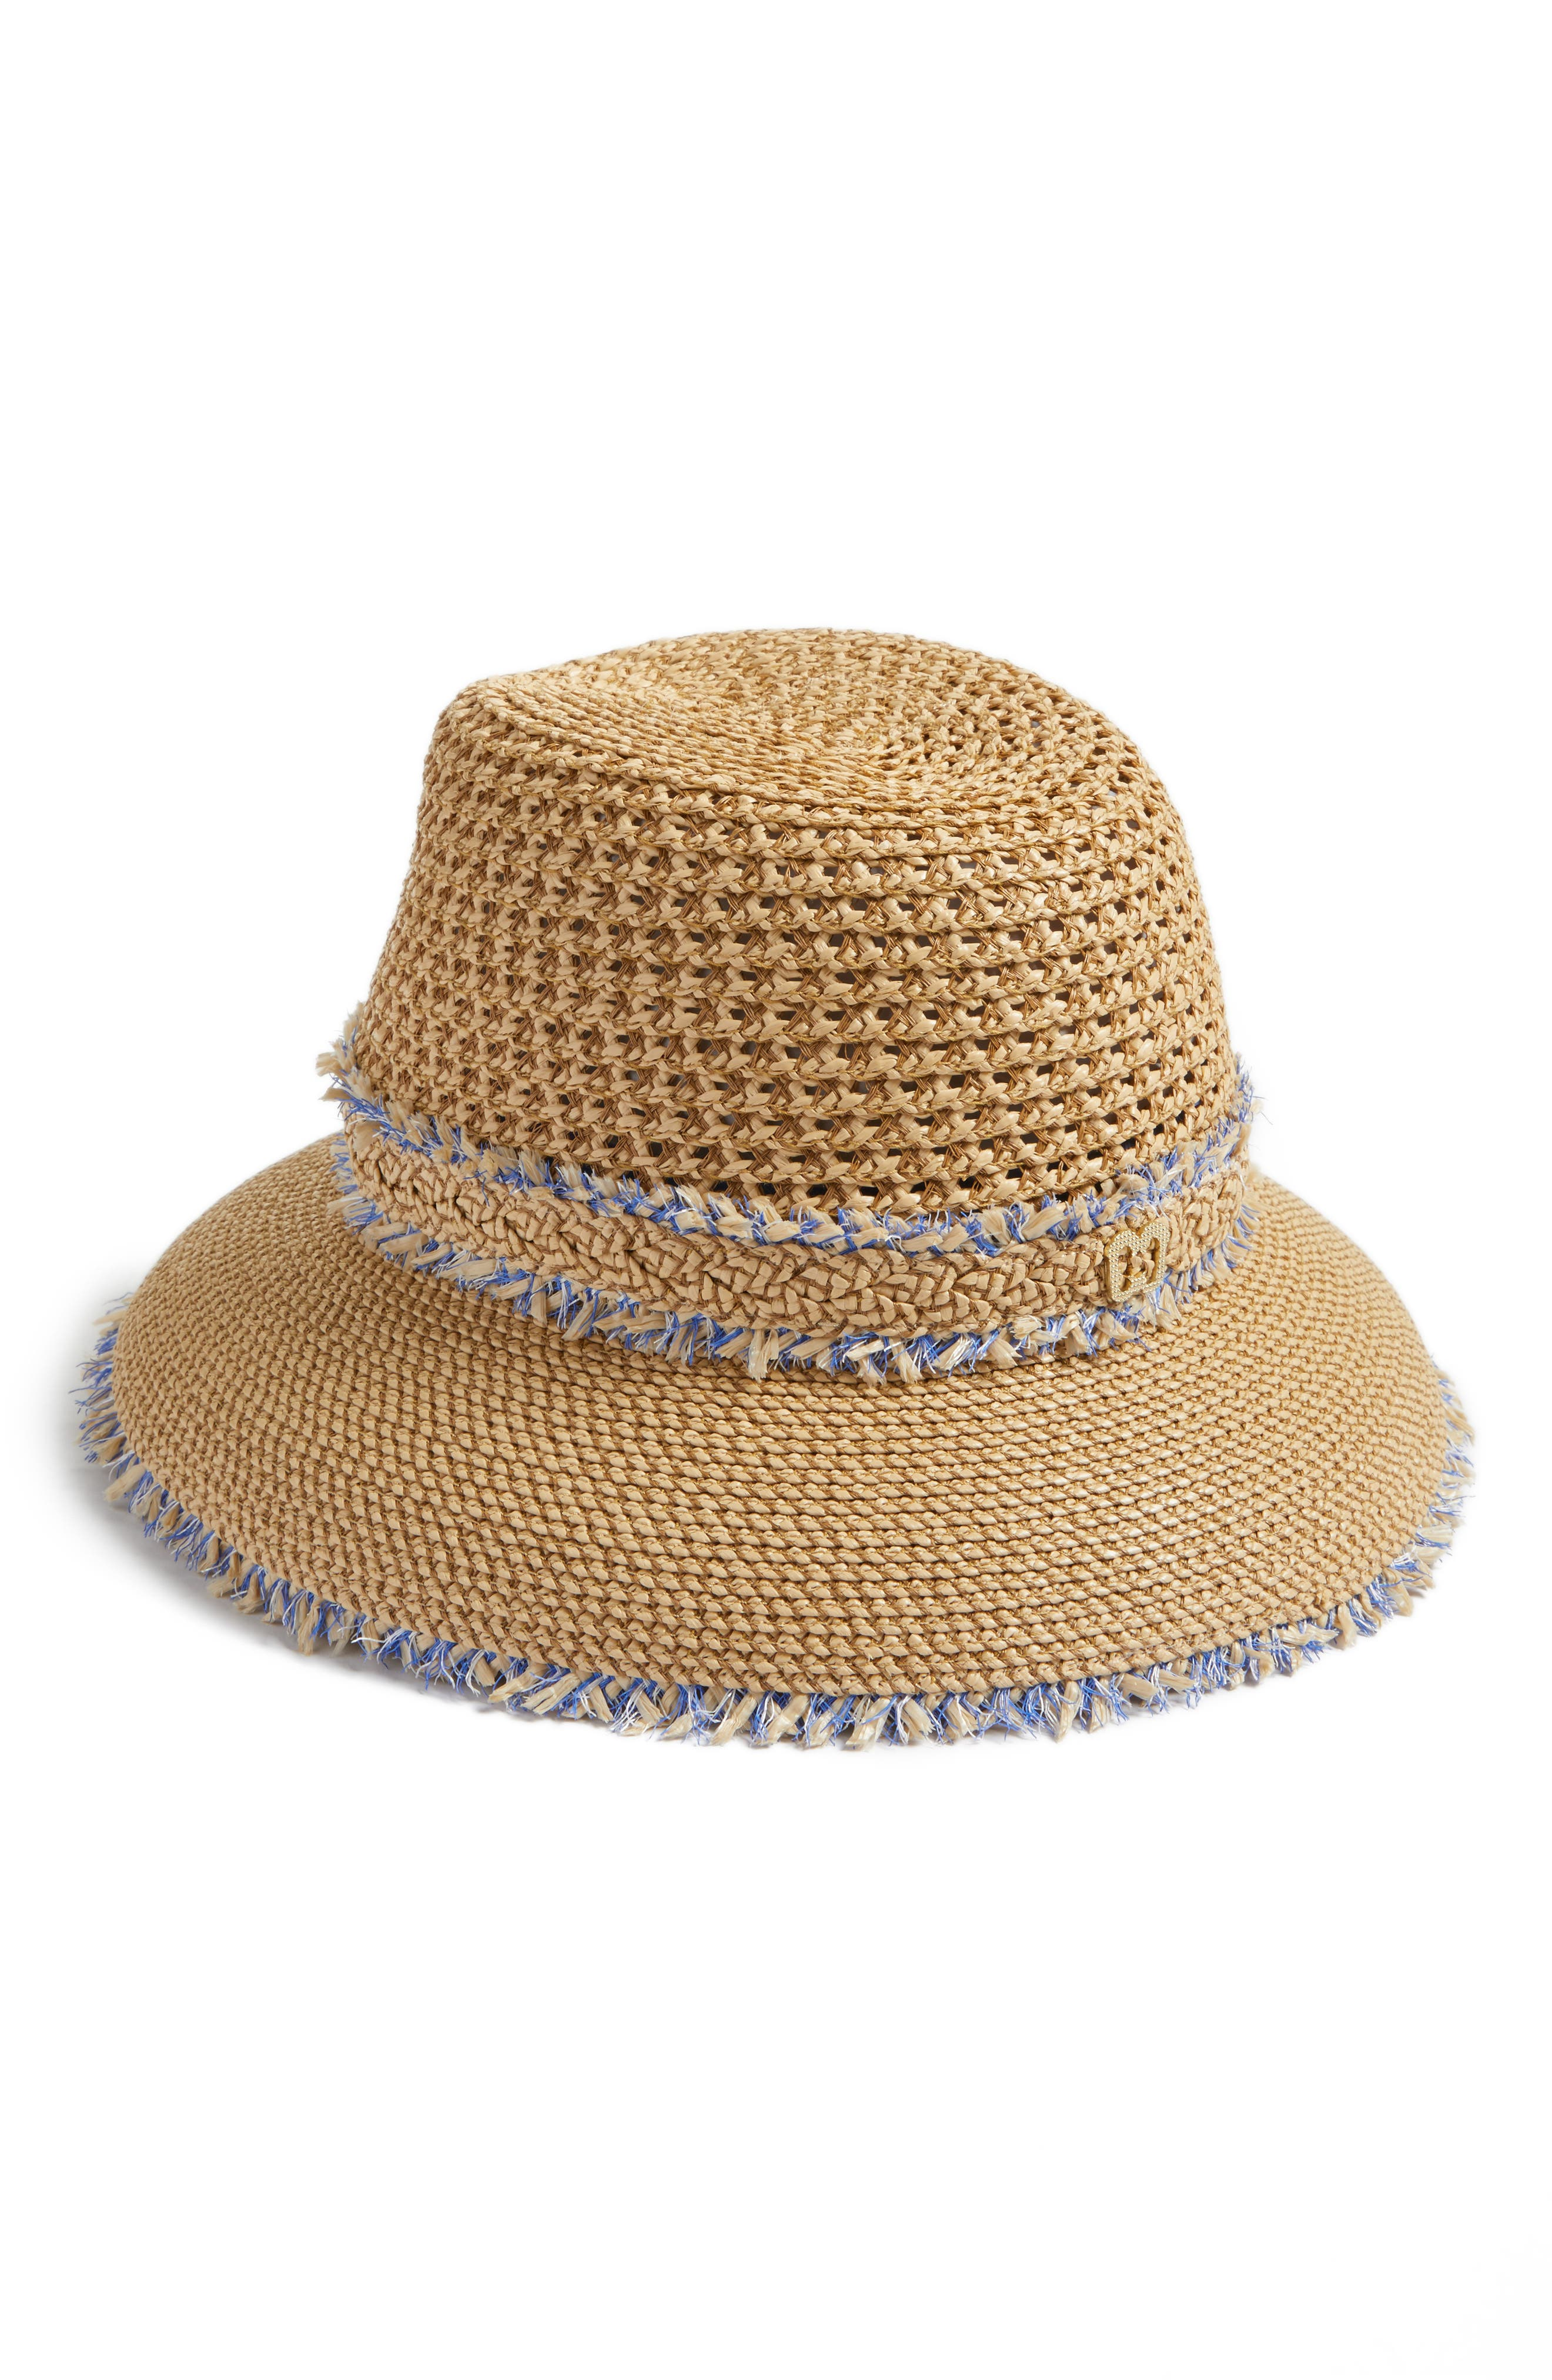 Lulu Squishee<sup>®</sup> Straw Hat,                             Alternate thumbnail 2, color,                             Peanut Mix